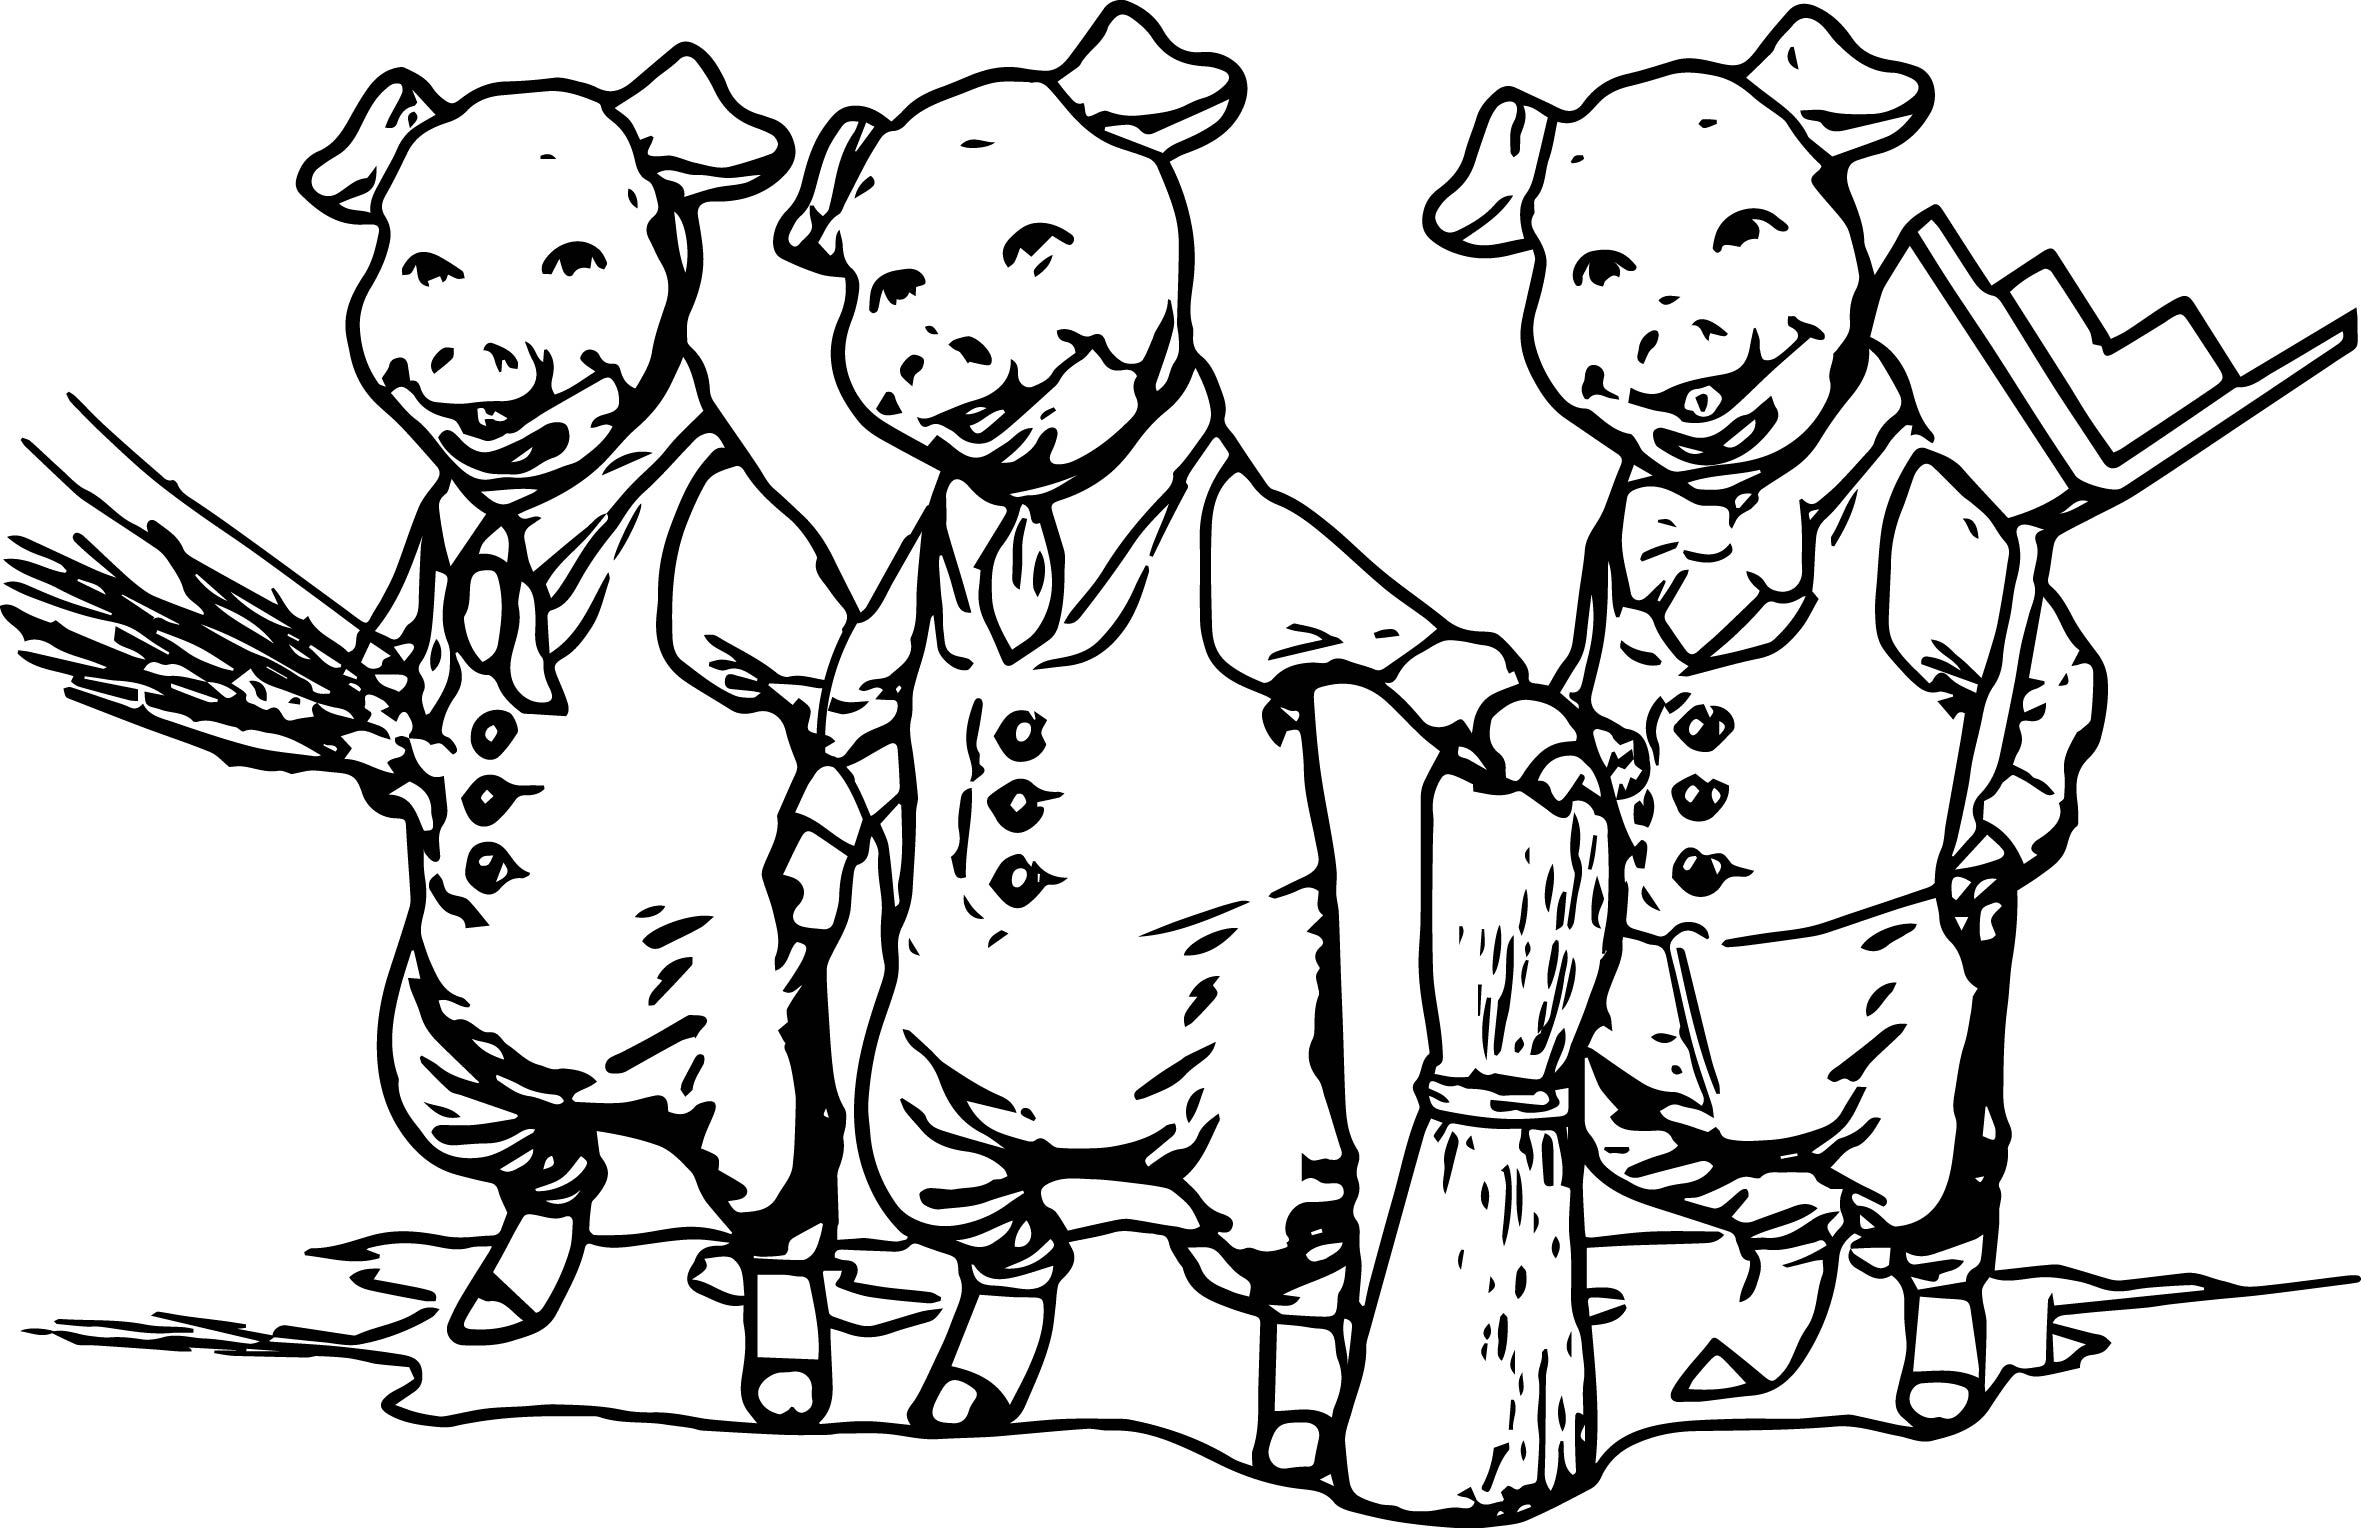 3 little pigs together coloring page wecoloringpage